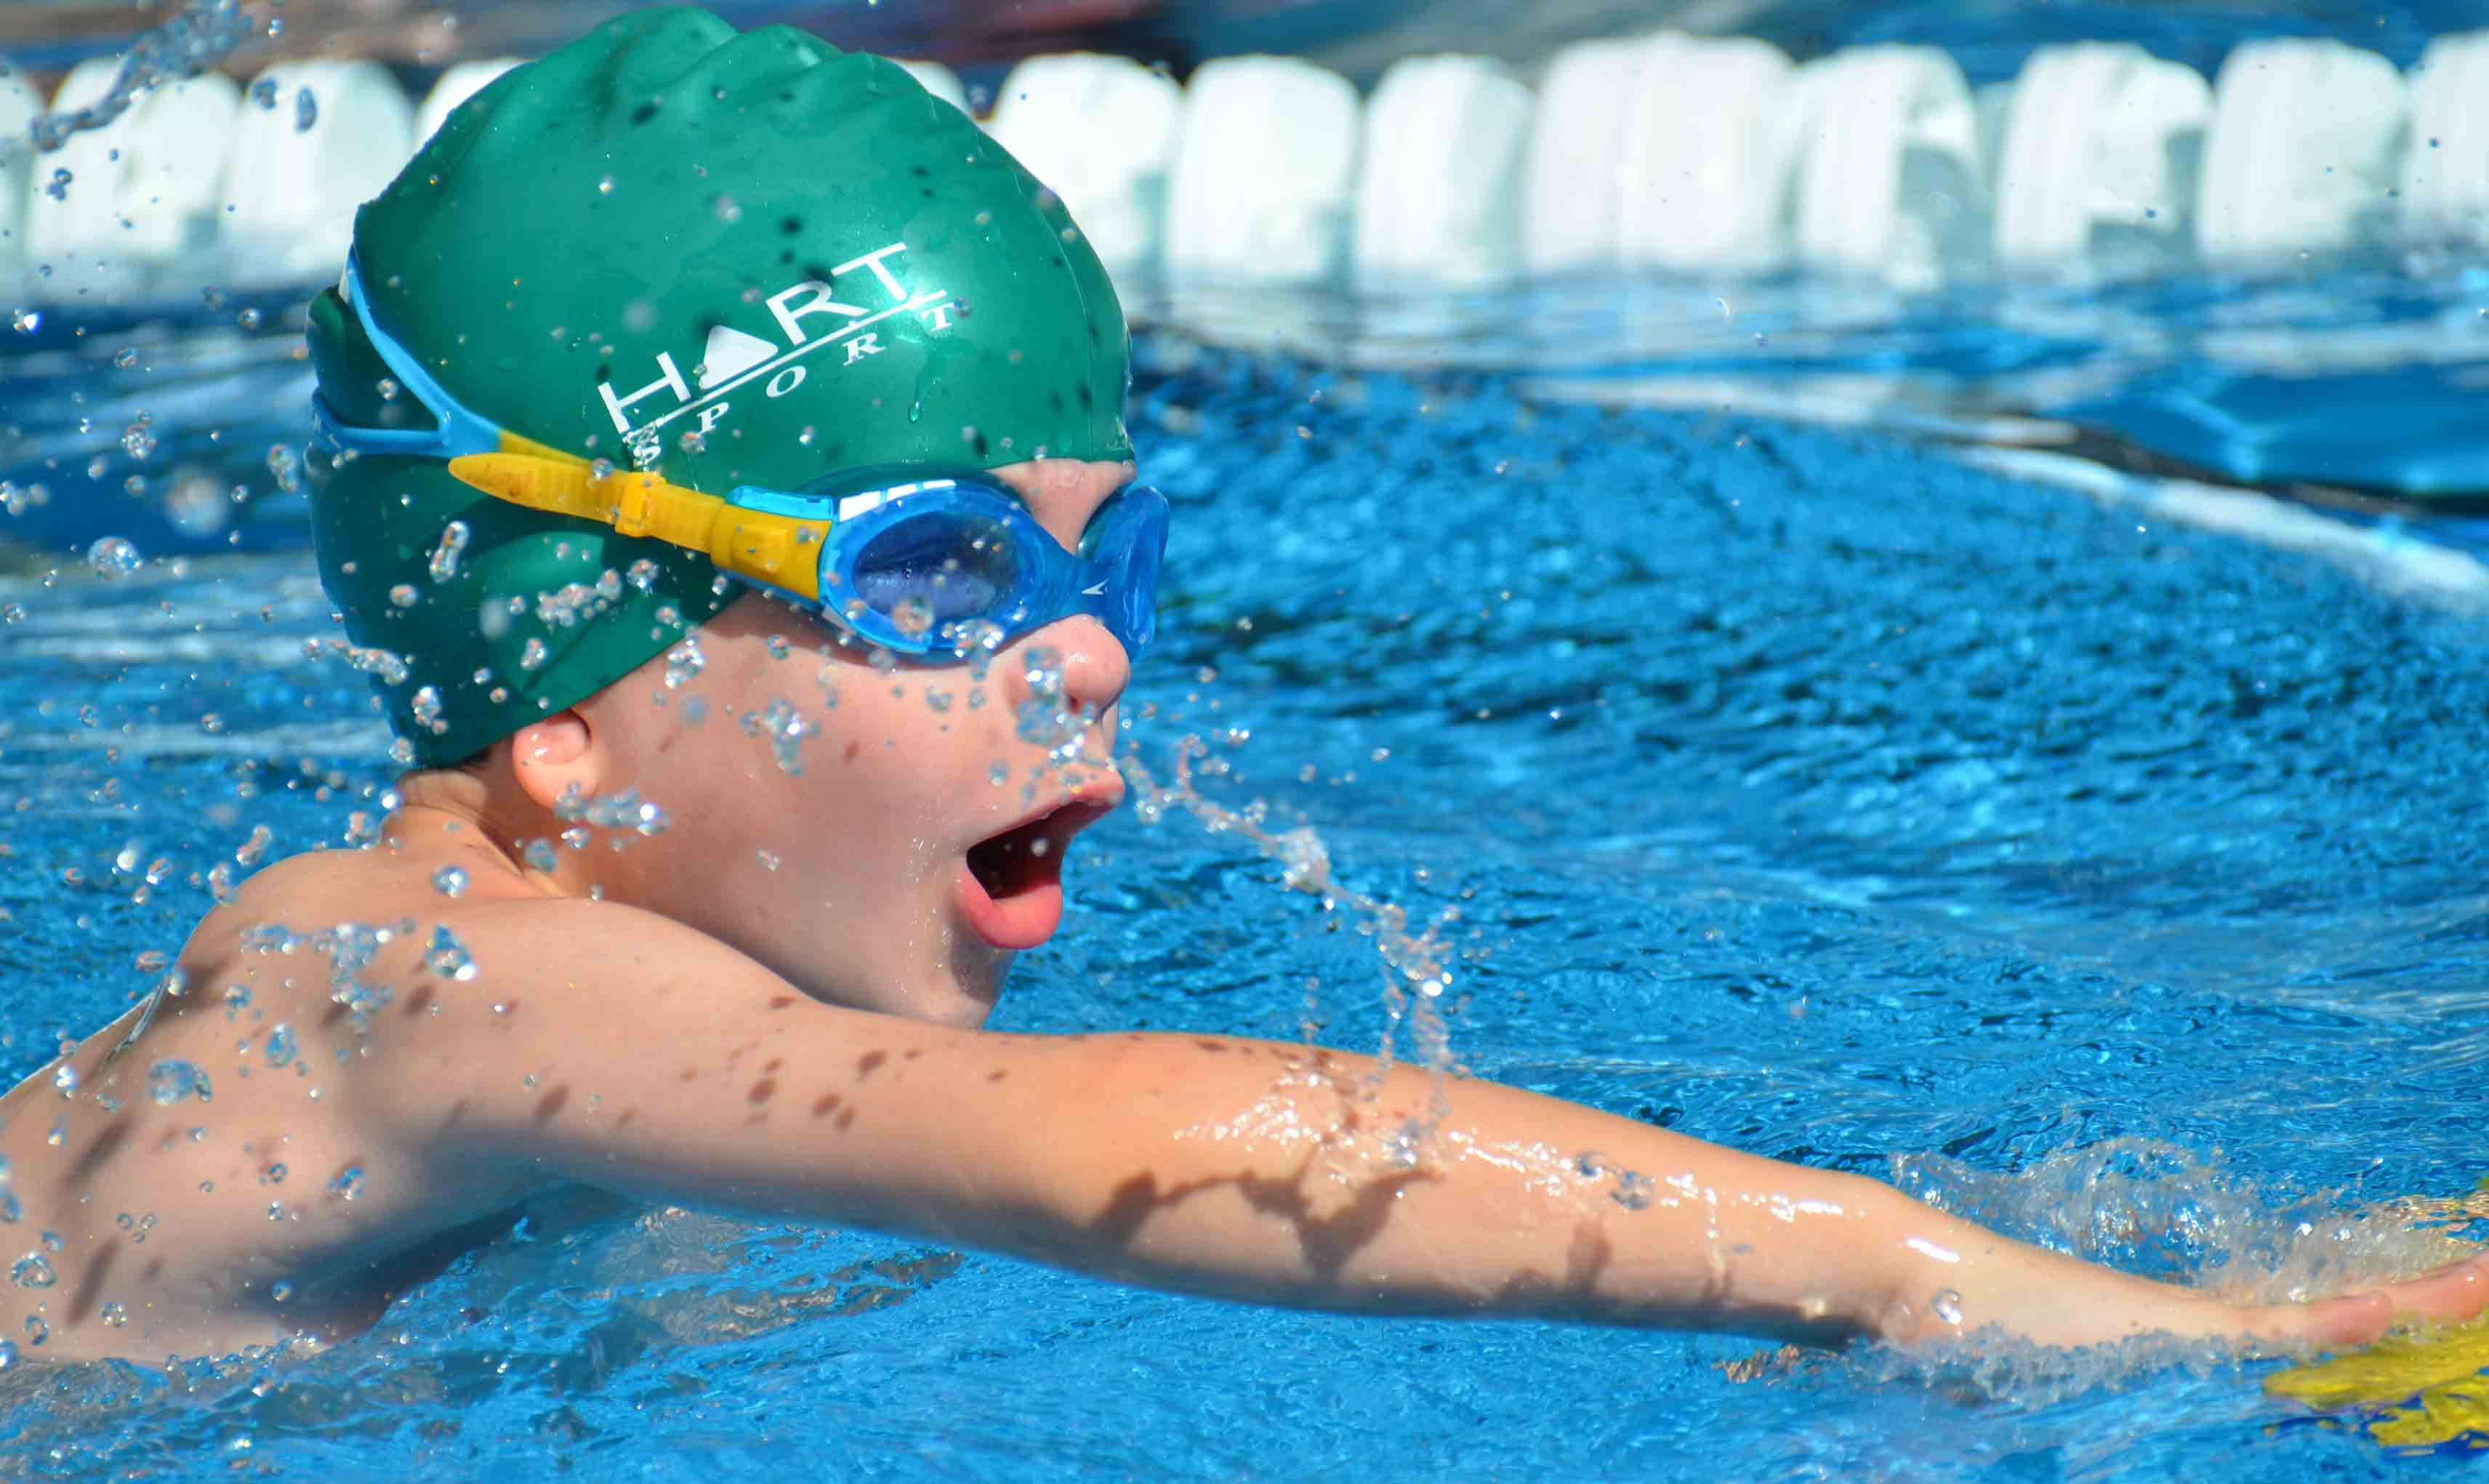 Saint-Kentigern-Boys'-School-Sports-Swimming.jpg